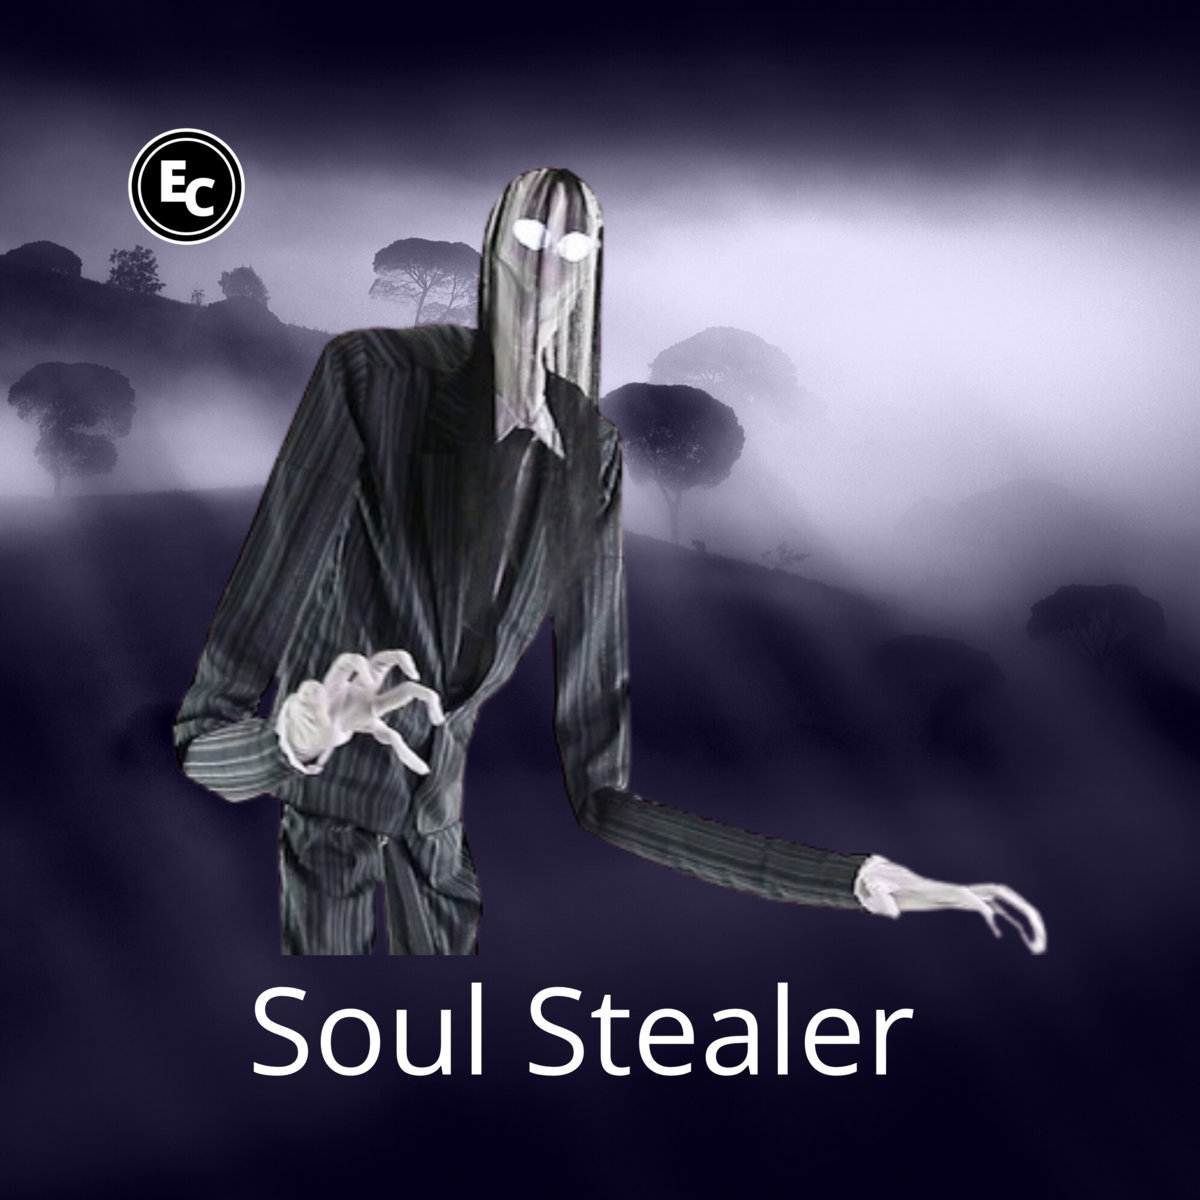 Soul Stealer by Enigmatic Clergy